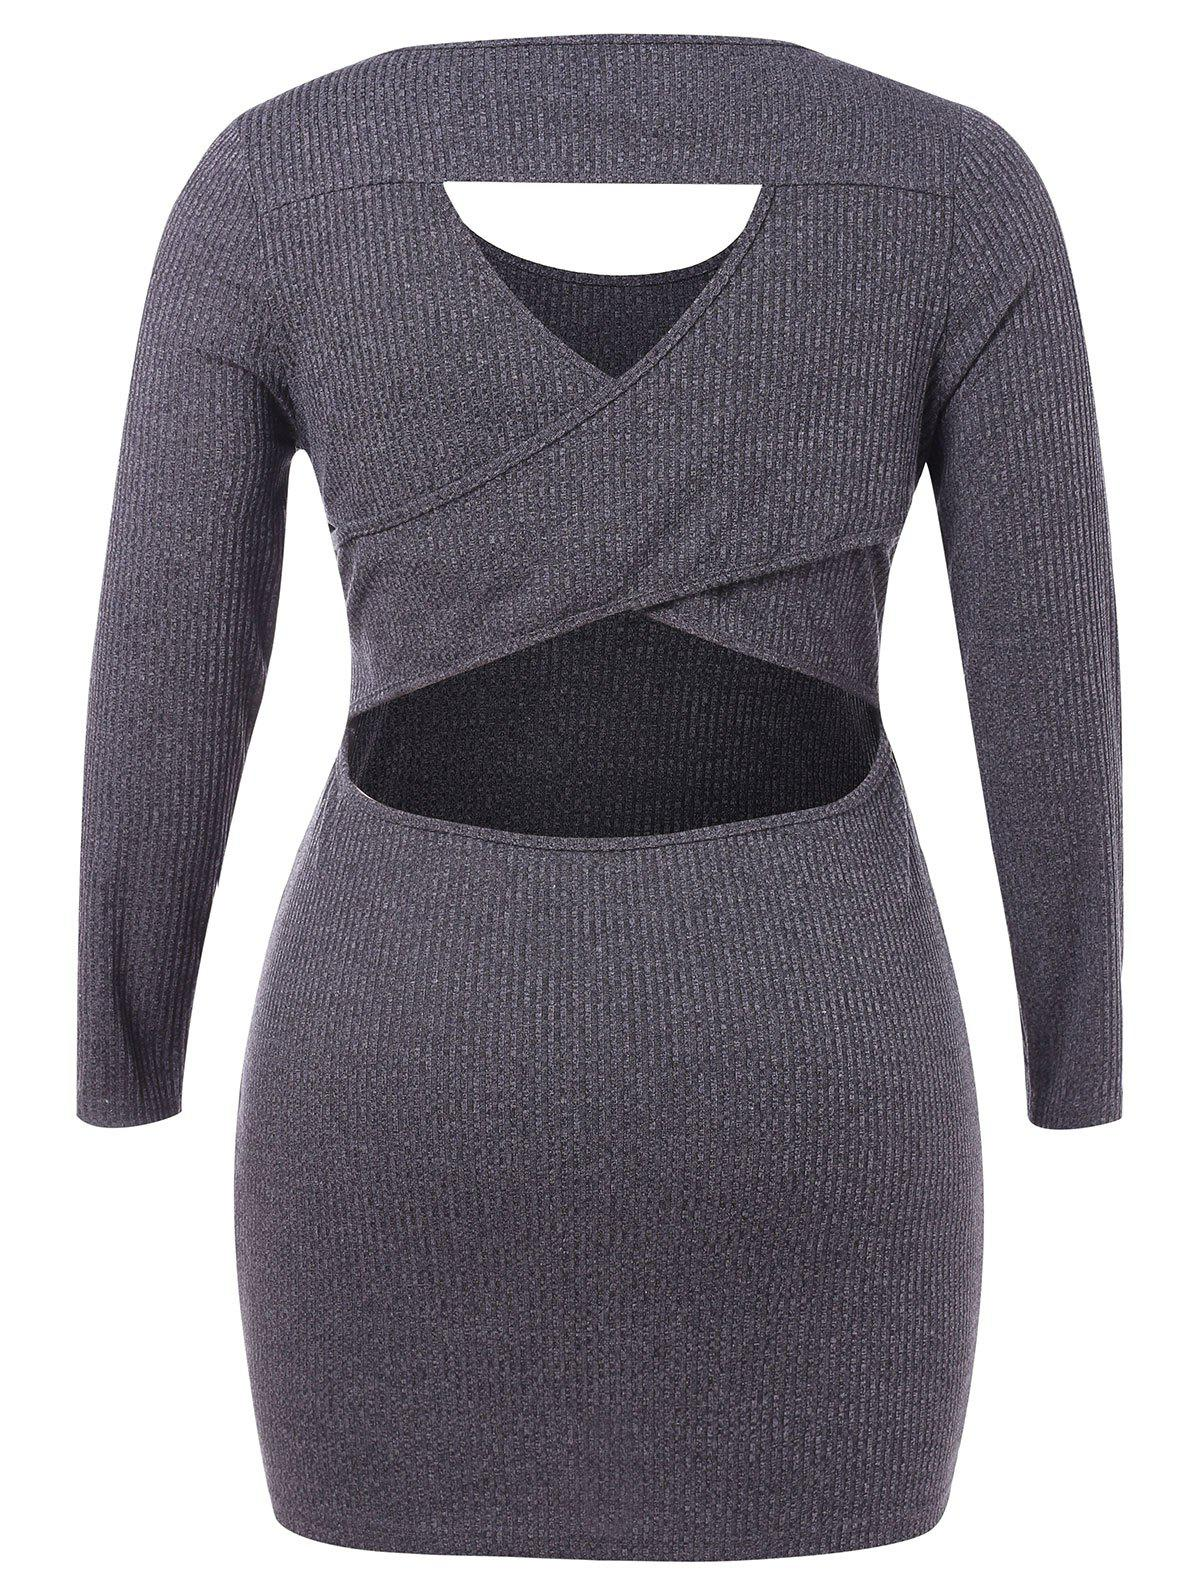 Plus Size Cut Out Criss Cross Bodycon Dress - CARBON GRAY L